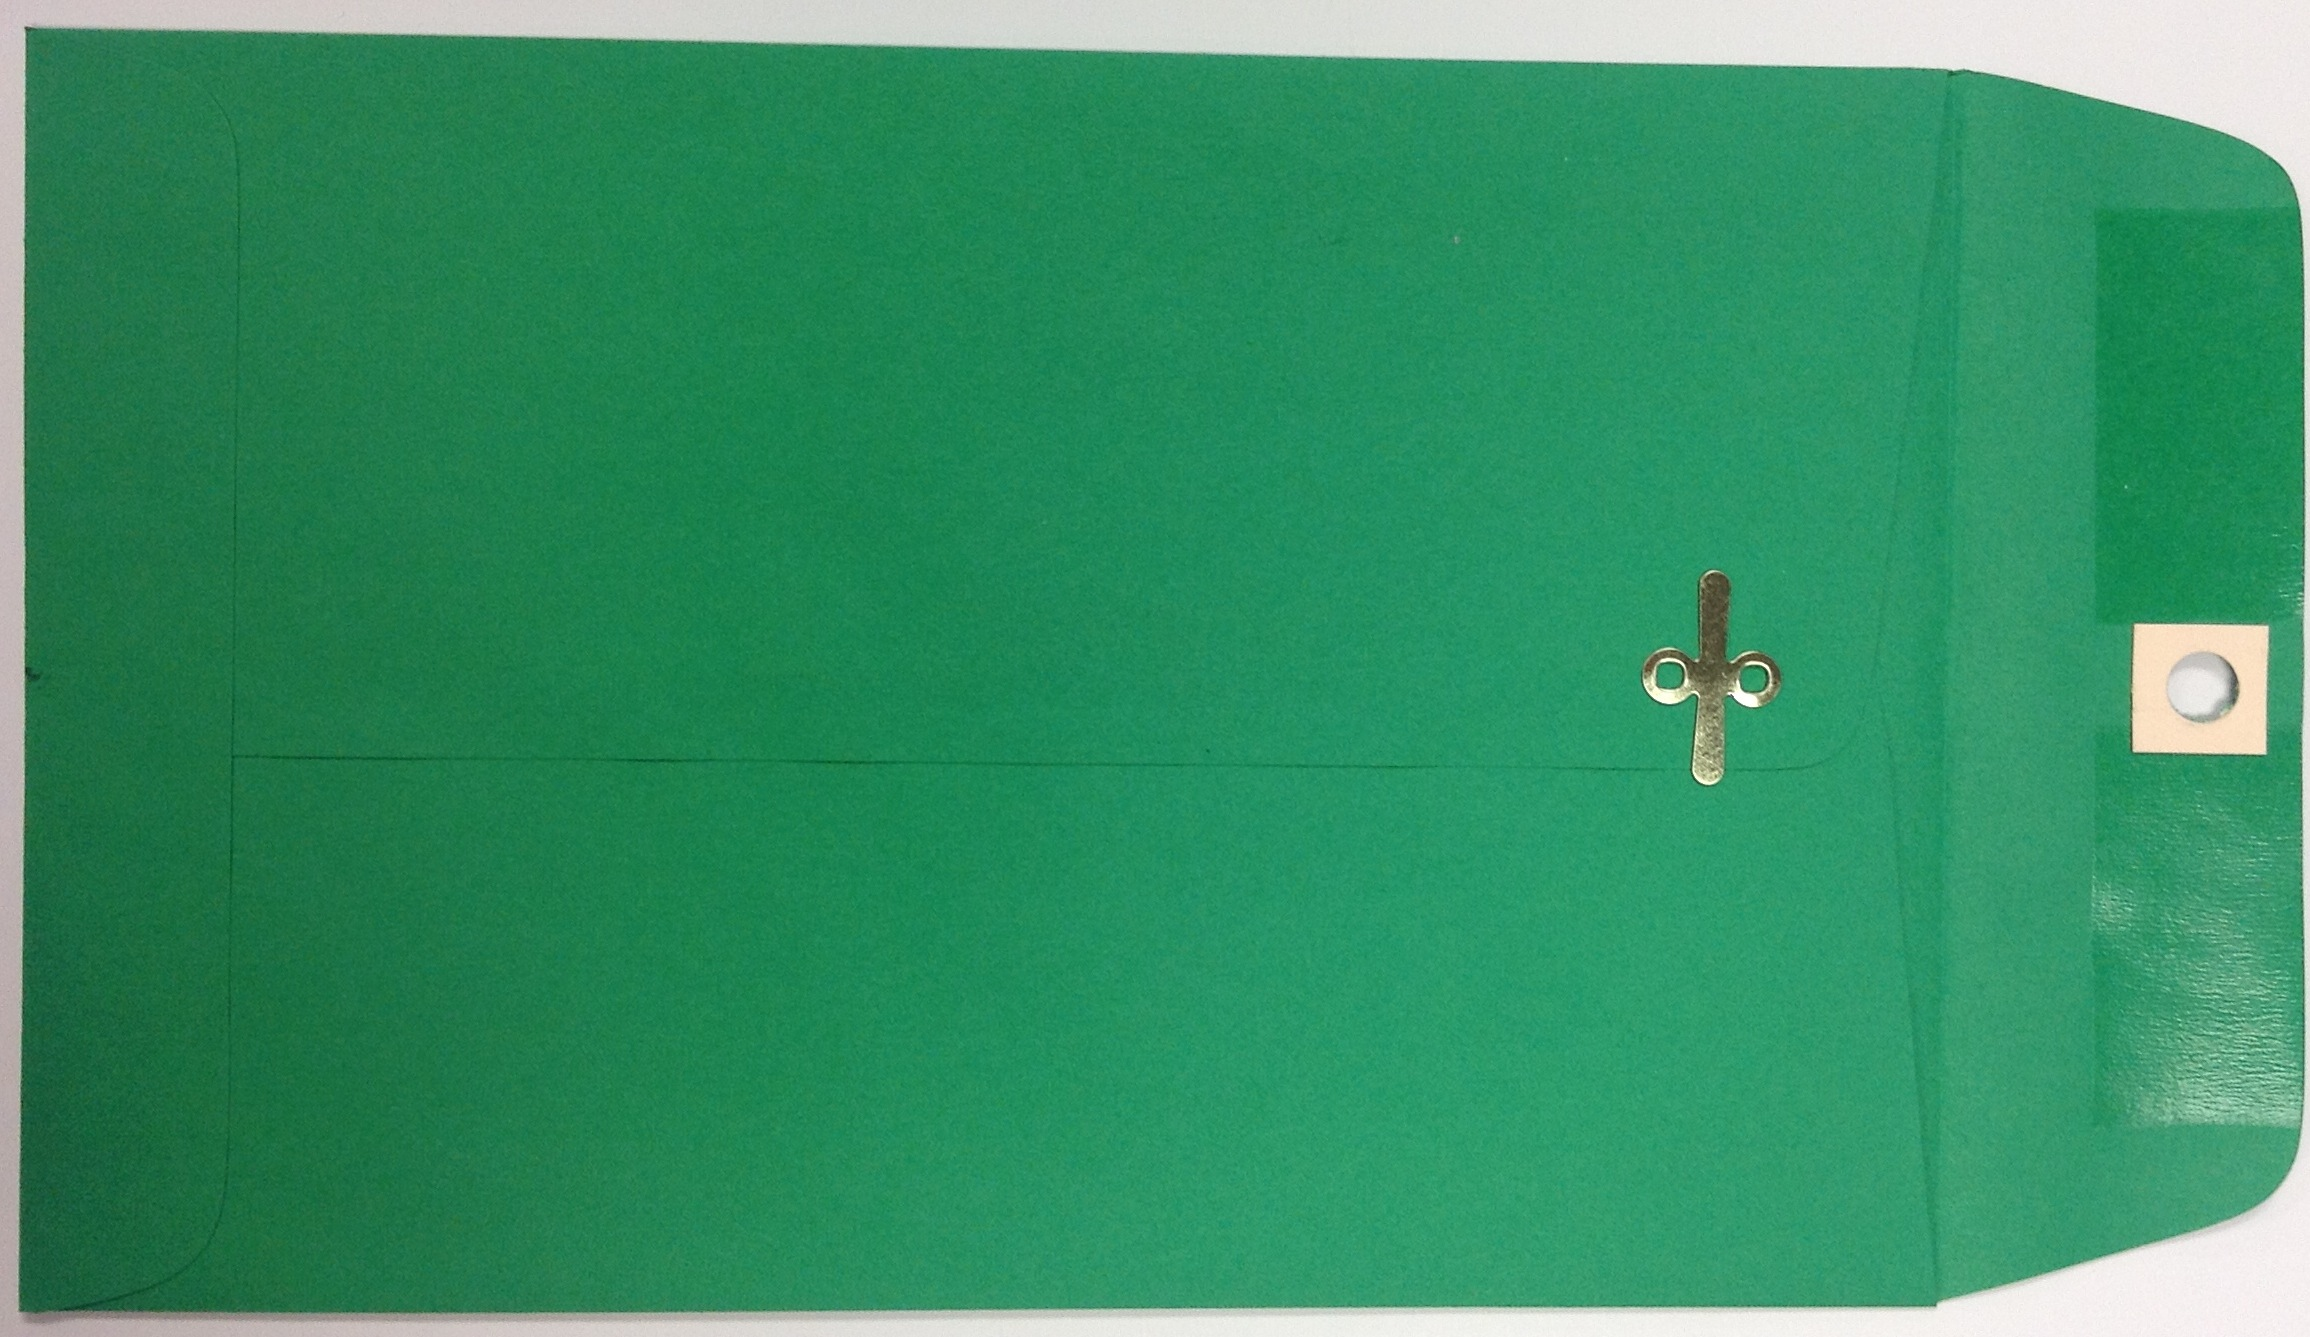 9X12 CLASP ENVELOPES BRIGHT GREEN 10s